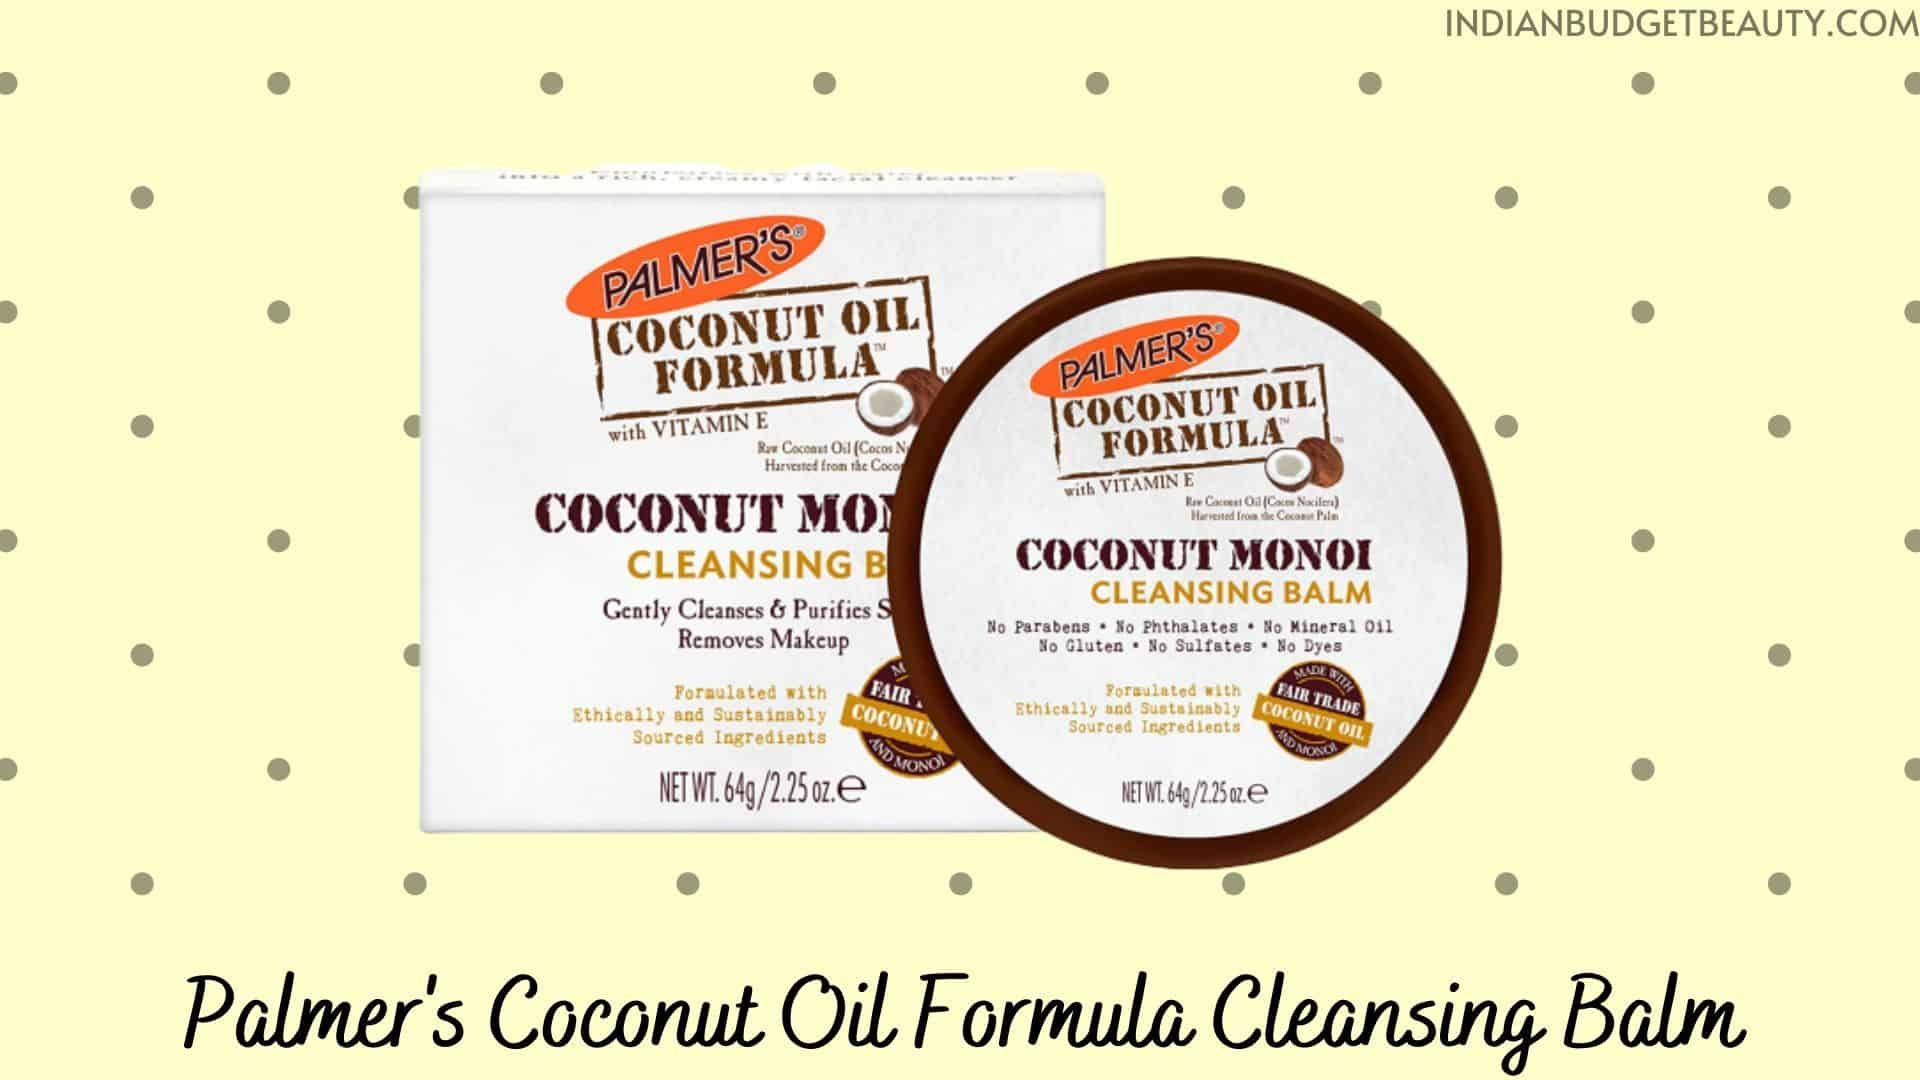 Palmer's Coconut Oil Formula Cleansing Balm  | best cleansing balm in india